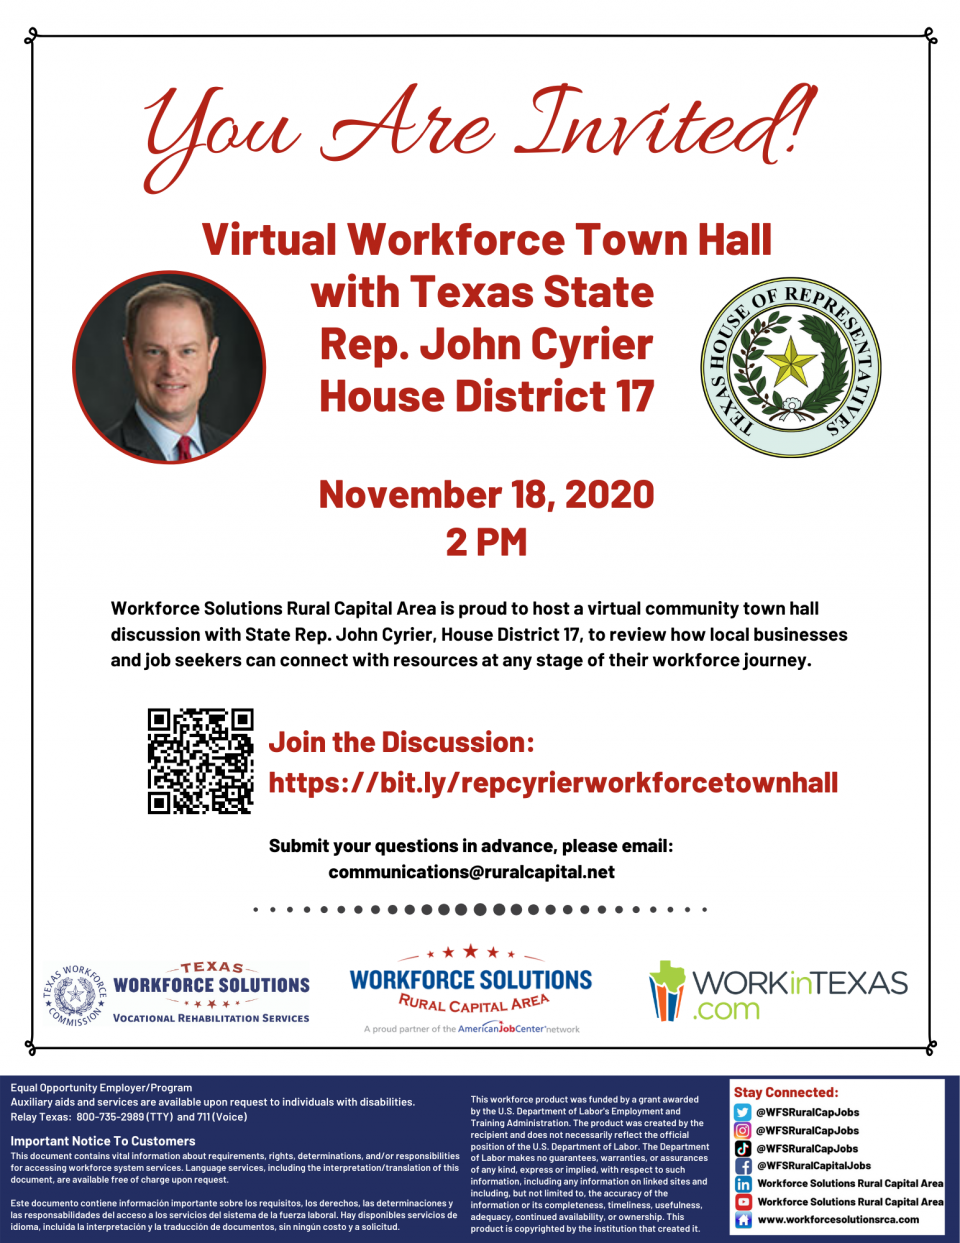 Join the Discussion: Virtual Workforce Town Hall with State Rep. John Cyrier, House District 17